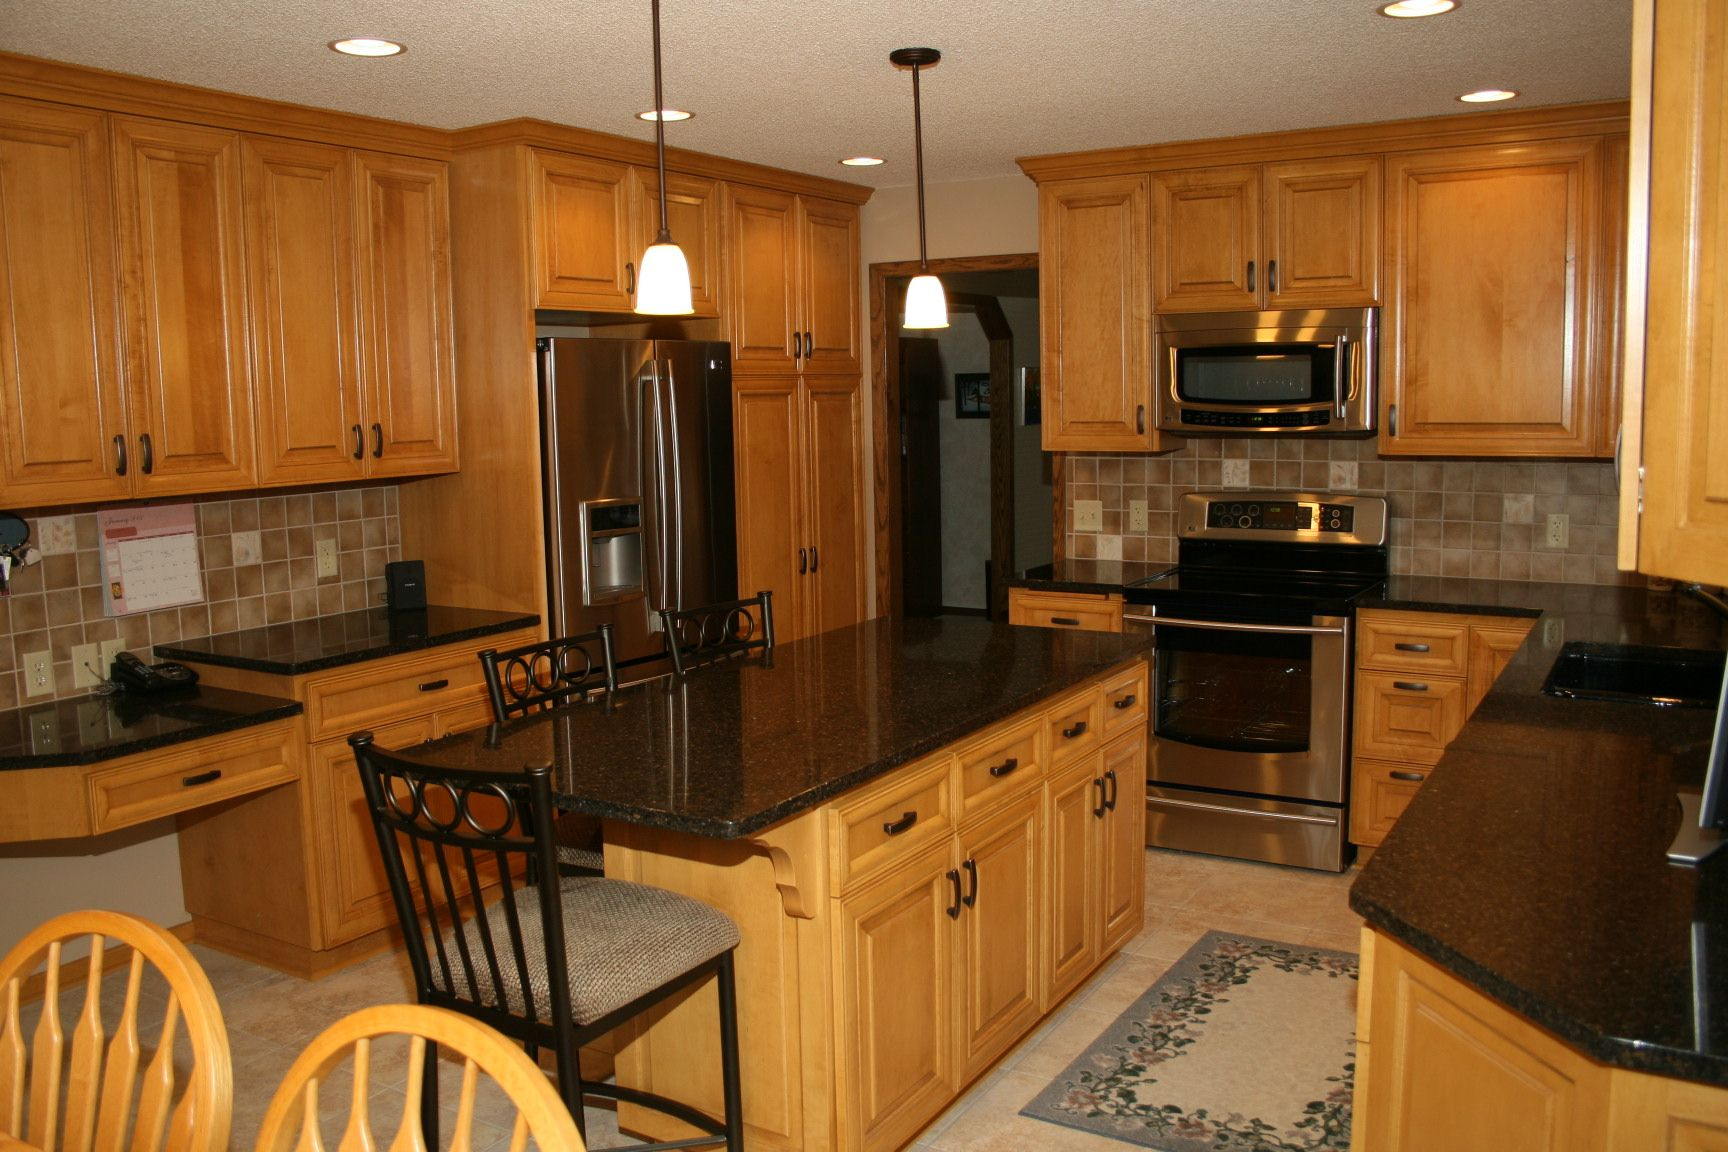 Furniture, L Shaped Light Wood Kitchen Cabinet With Black ... on Natural Maple Cabinets With Black Granite Countertops  id=84273